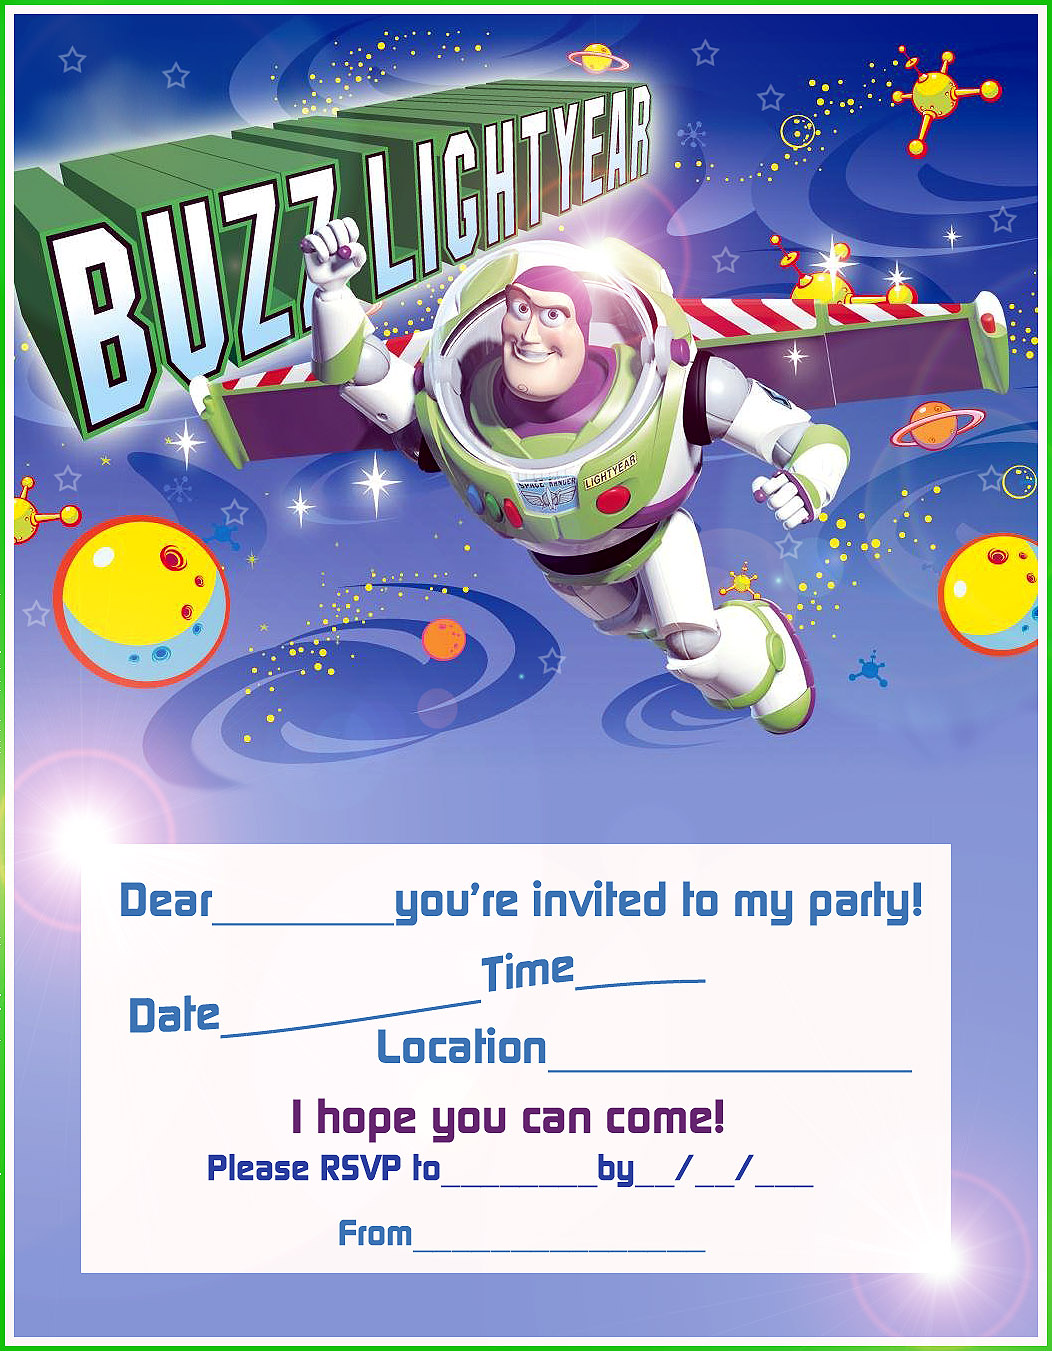 buzz lightyear toy instruction manual